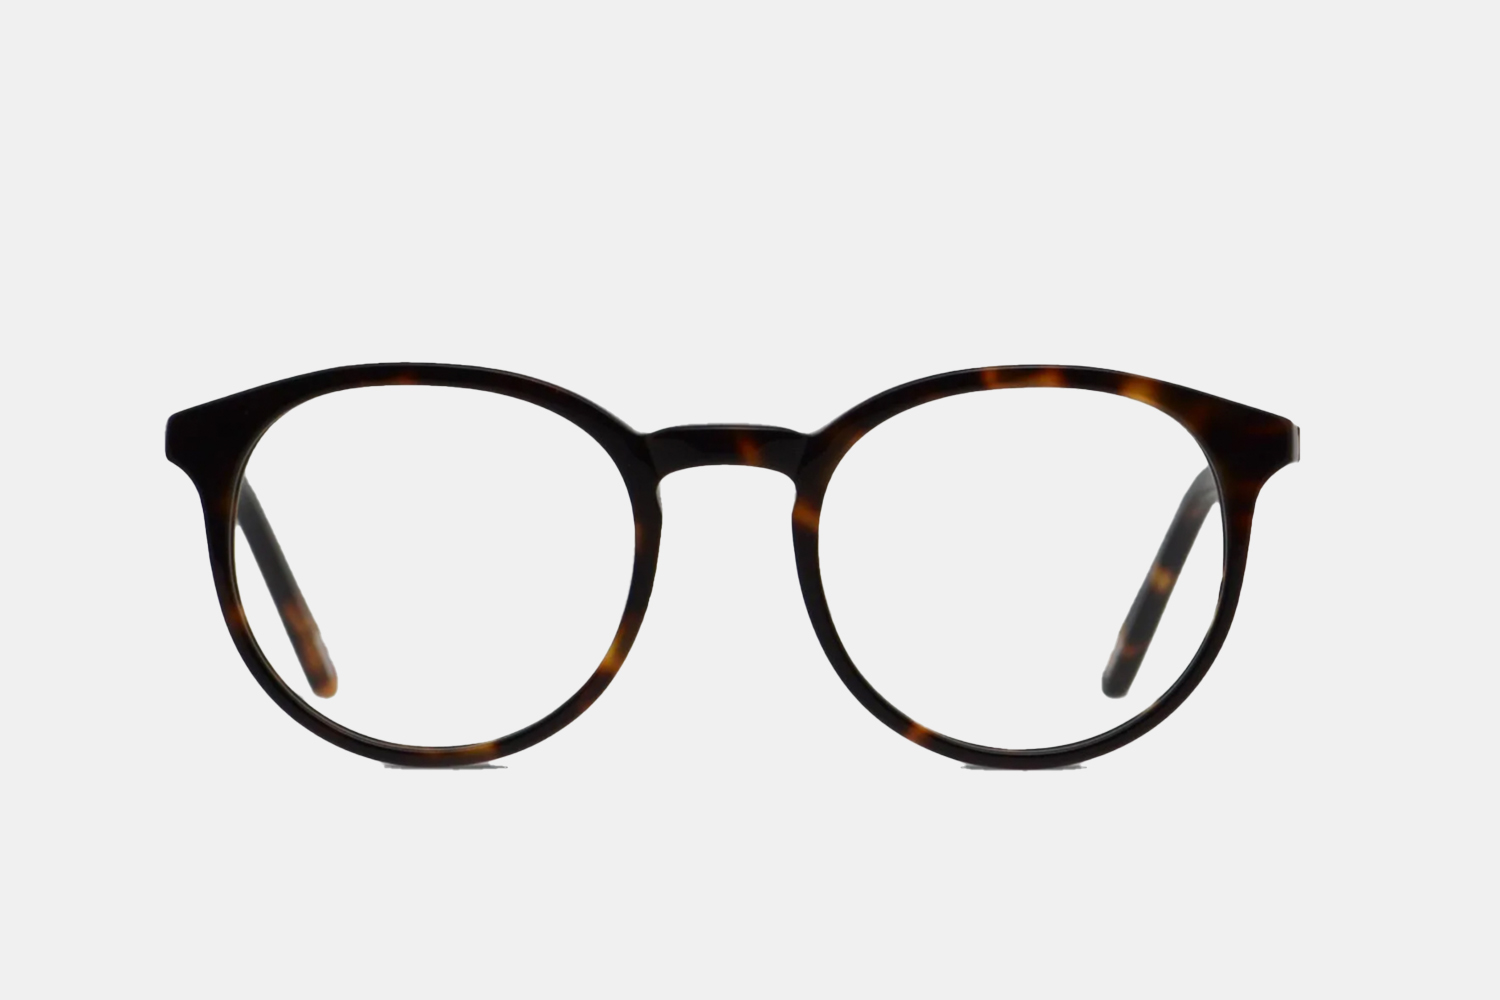 A pair of glasses frames.